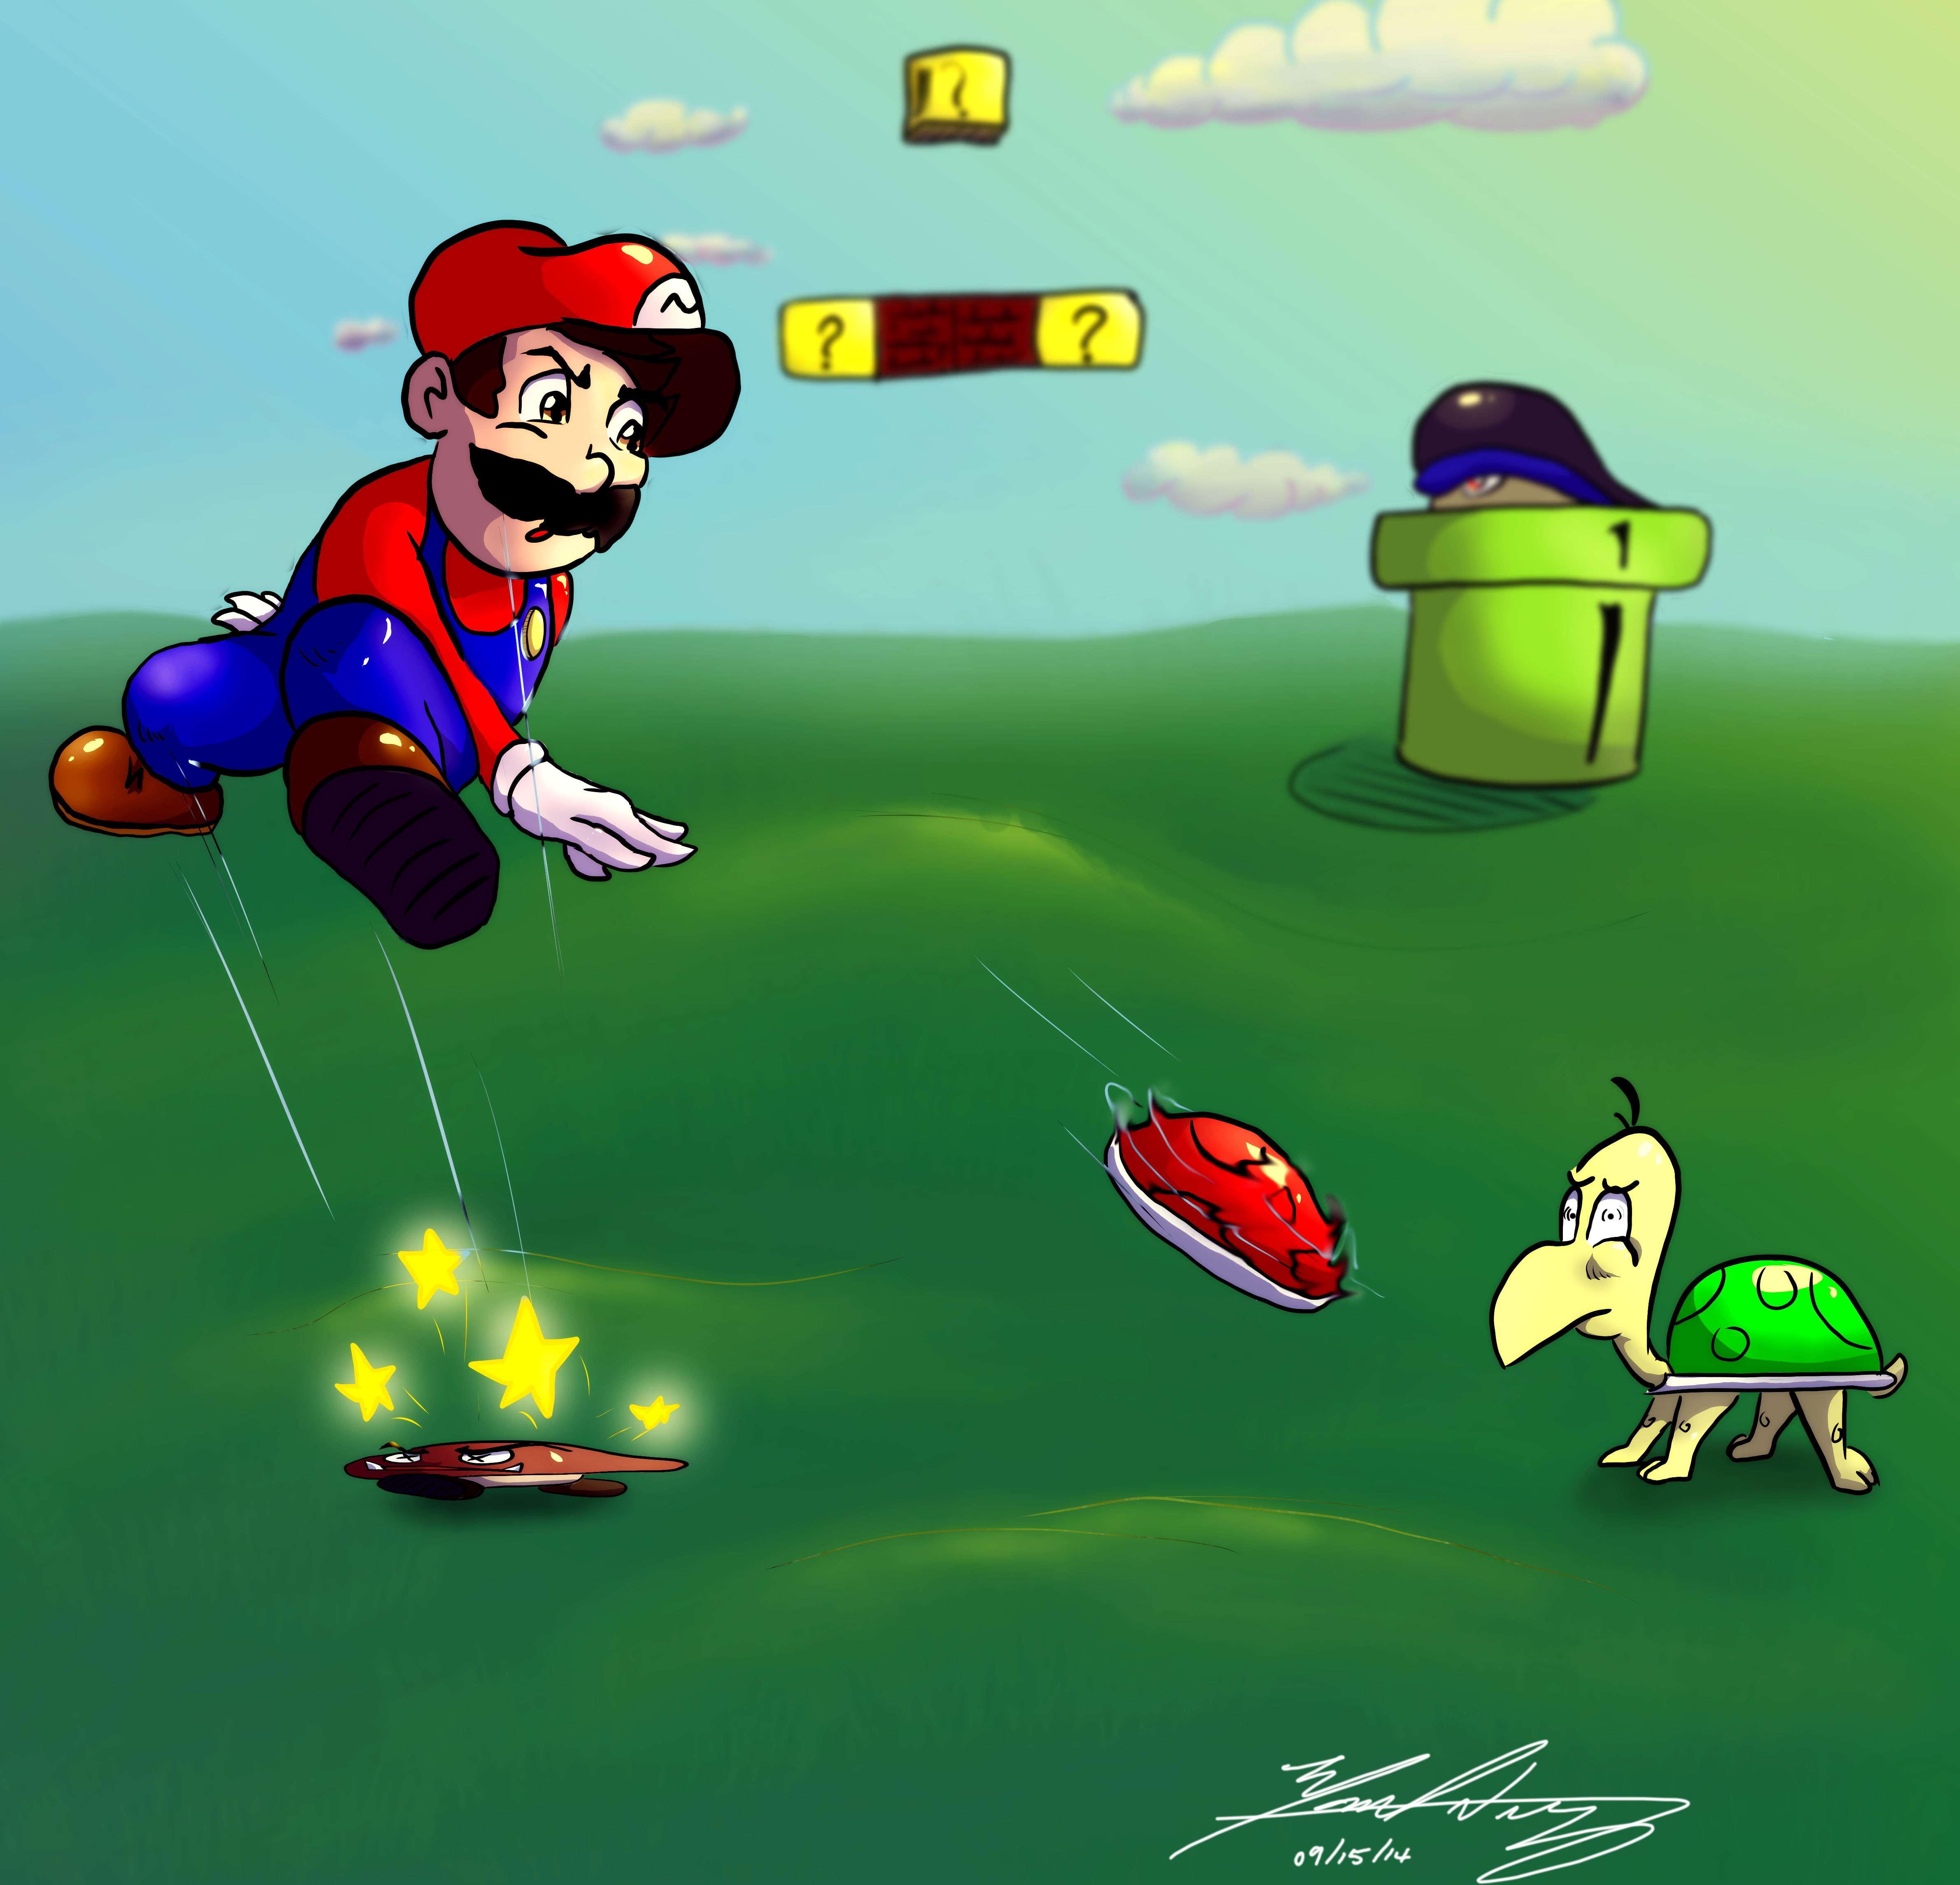 Mario - Fighting The Good Figh